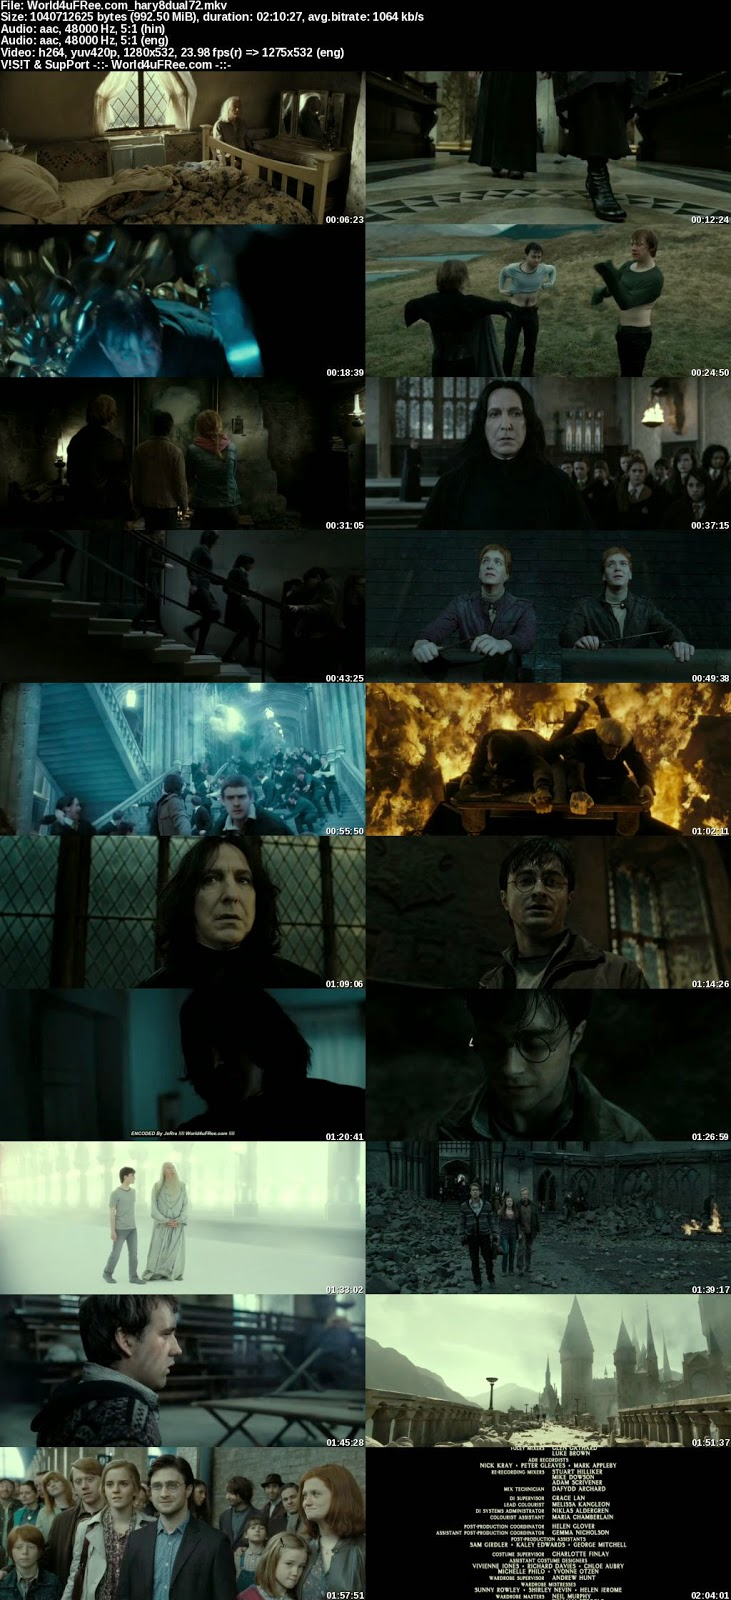 Harry Potter and the Deathly Hallows Part 2 2011 BRRip 720p Dual Audio 5.1 Hindi Dubbed world4ufree.ws, hollywood movie Harry Potter and the Deathly Hallows Part 2 2011 hindi dubbed dual audio hindi english languages original audio 720p BRRip hdrip free download 700mb or watch online at world4ufree.ws